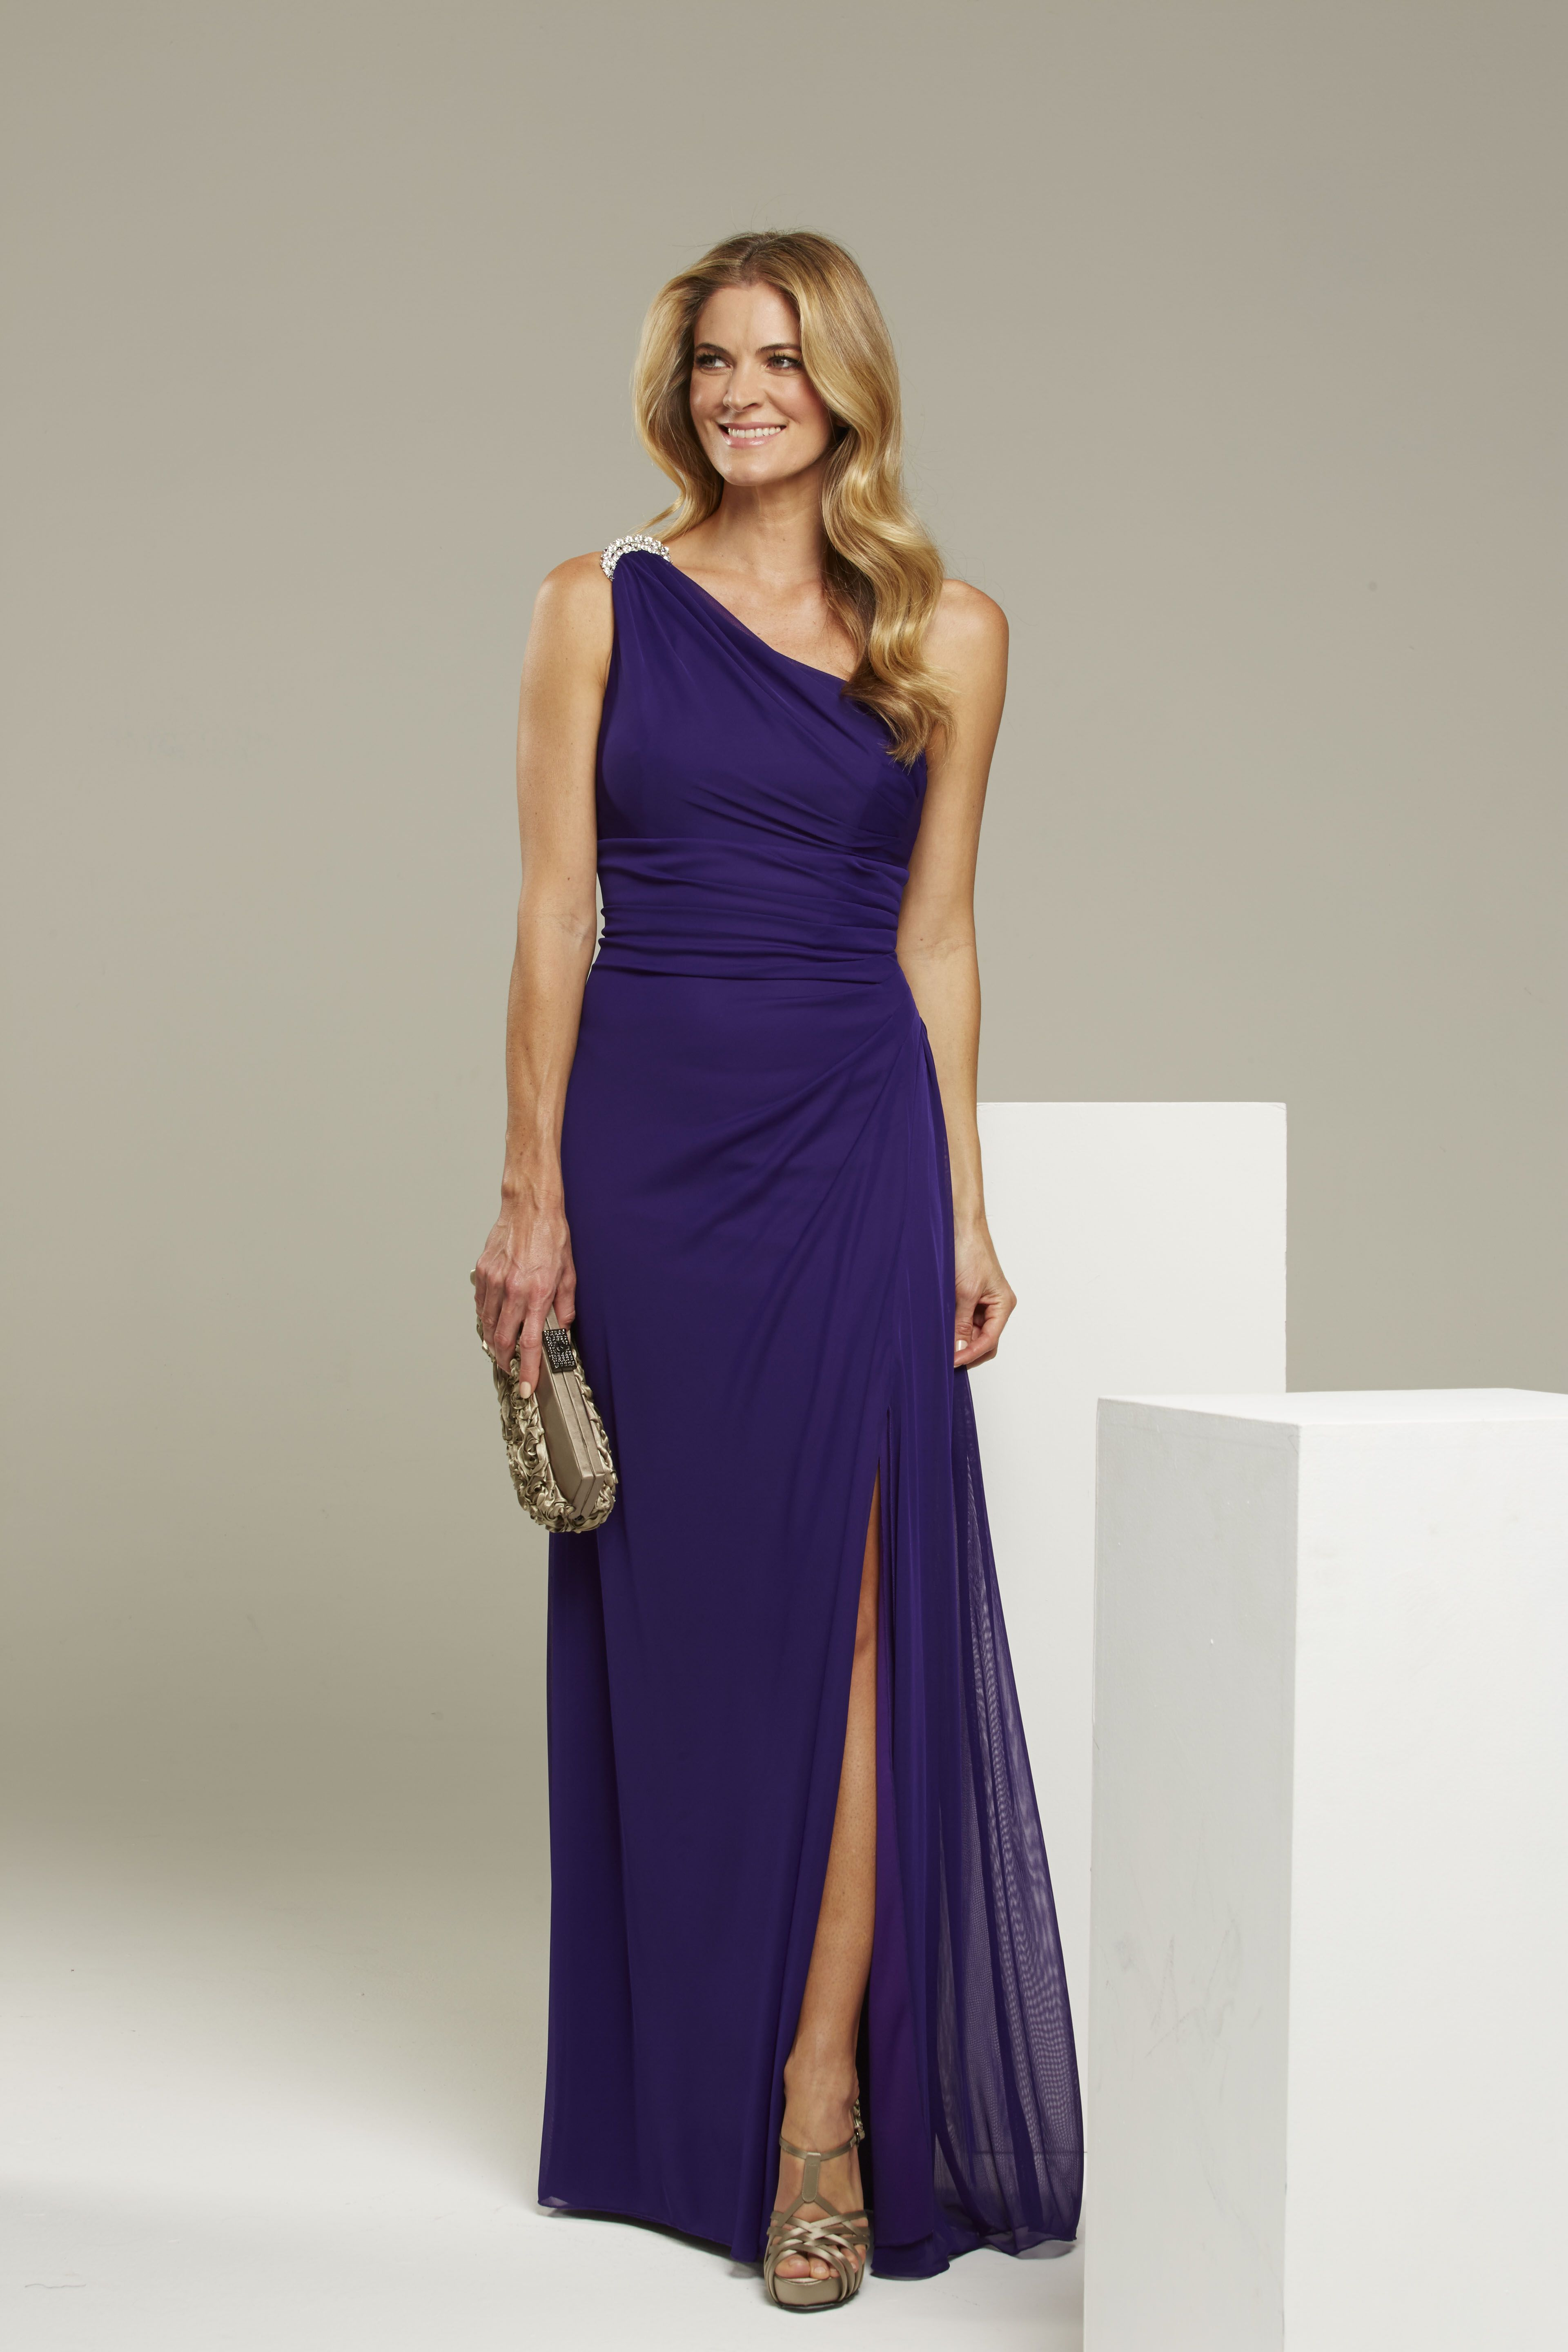 Mr k bridesmaid dress style kb4994 wedfing ideas pinterest mr k bridesmaid dress style kb4994 ombrellifo Choice Image